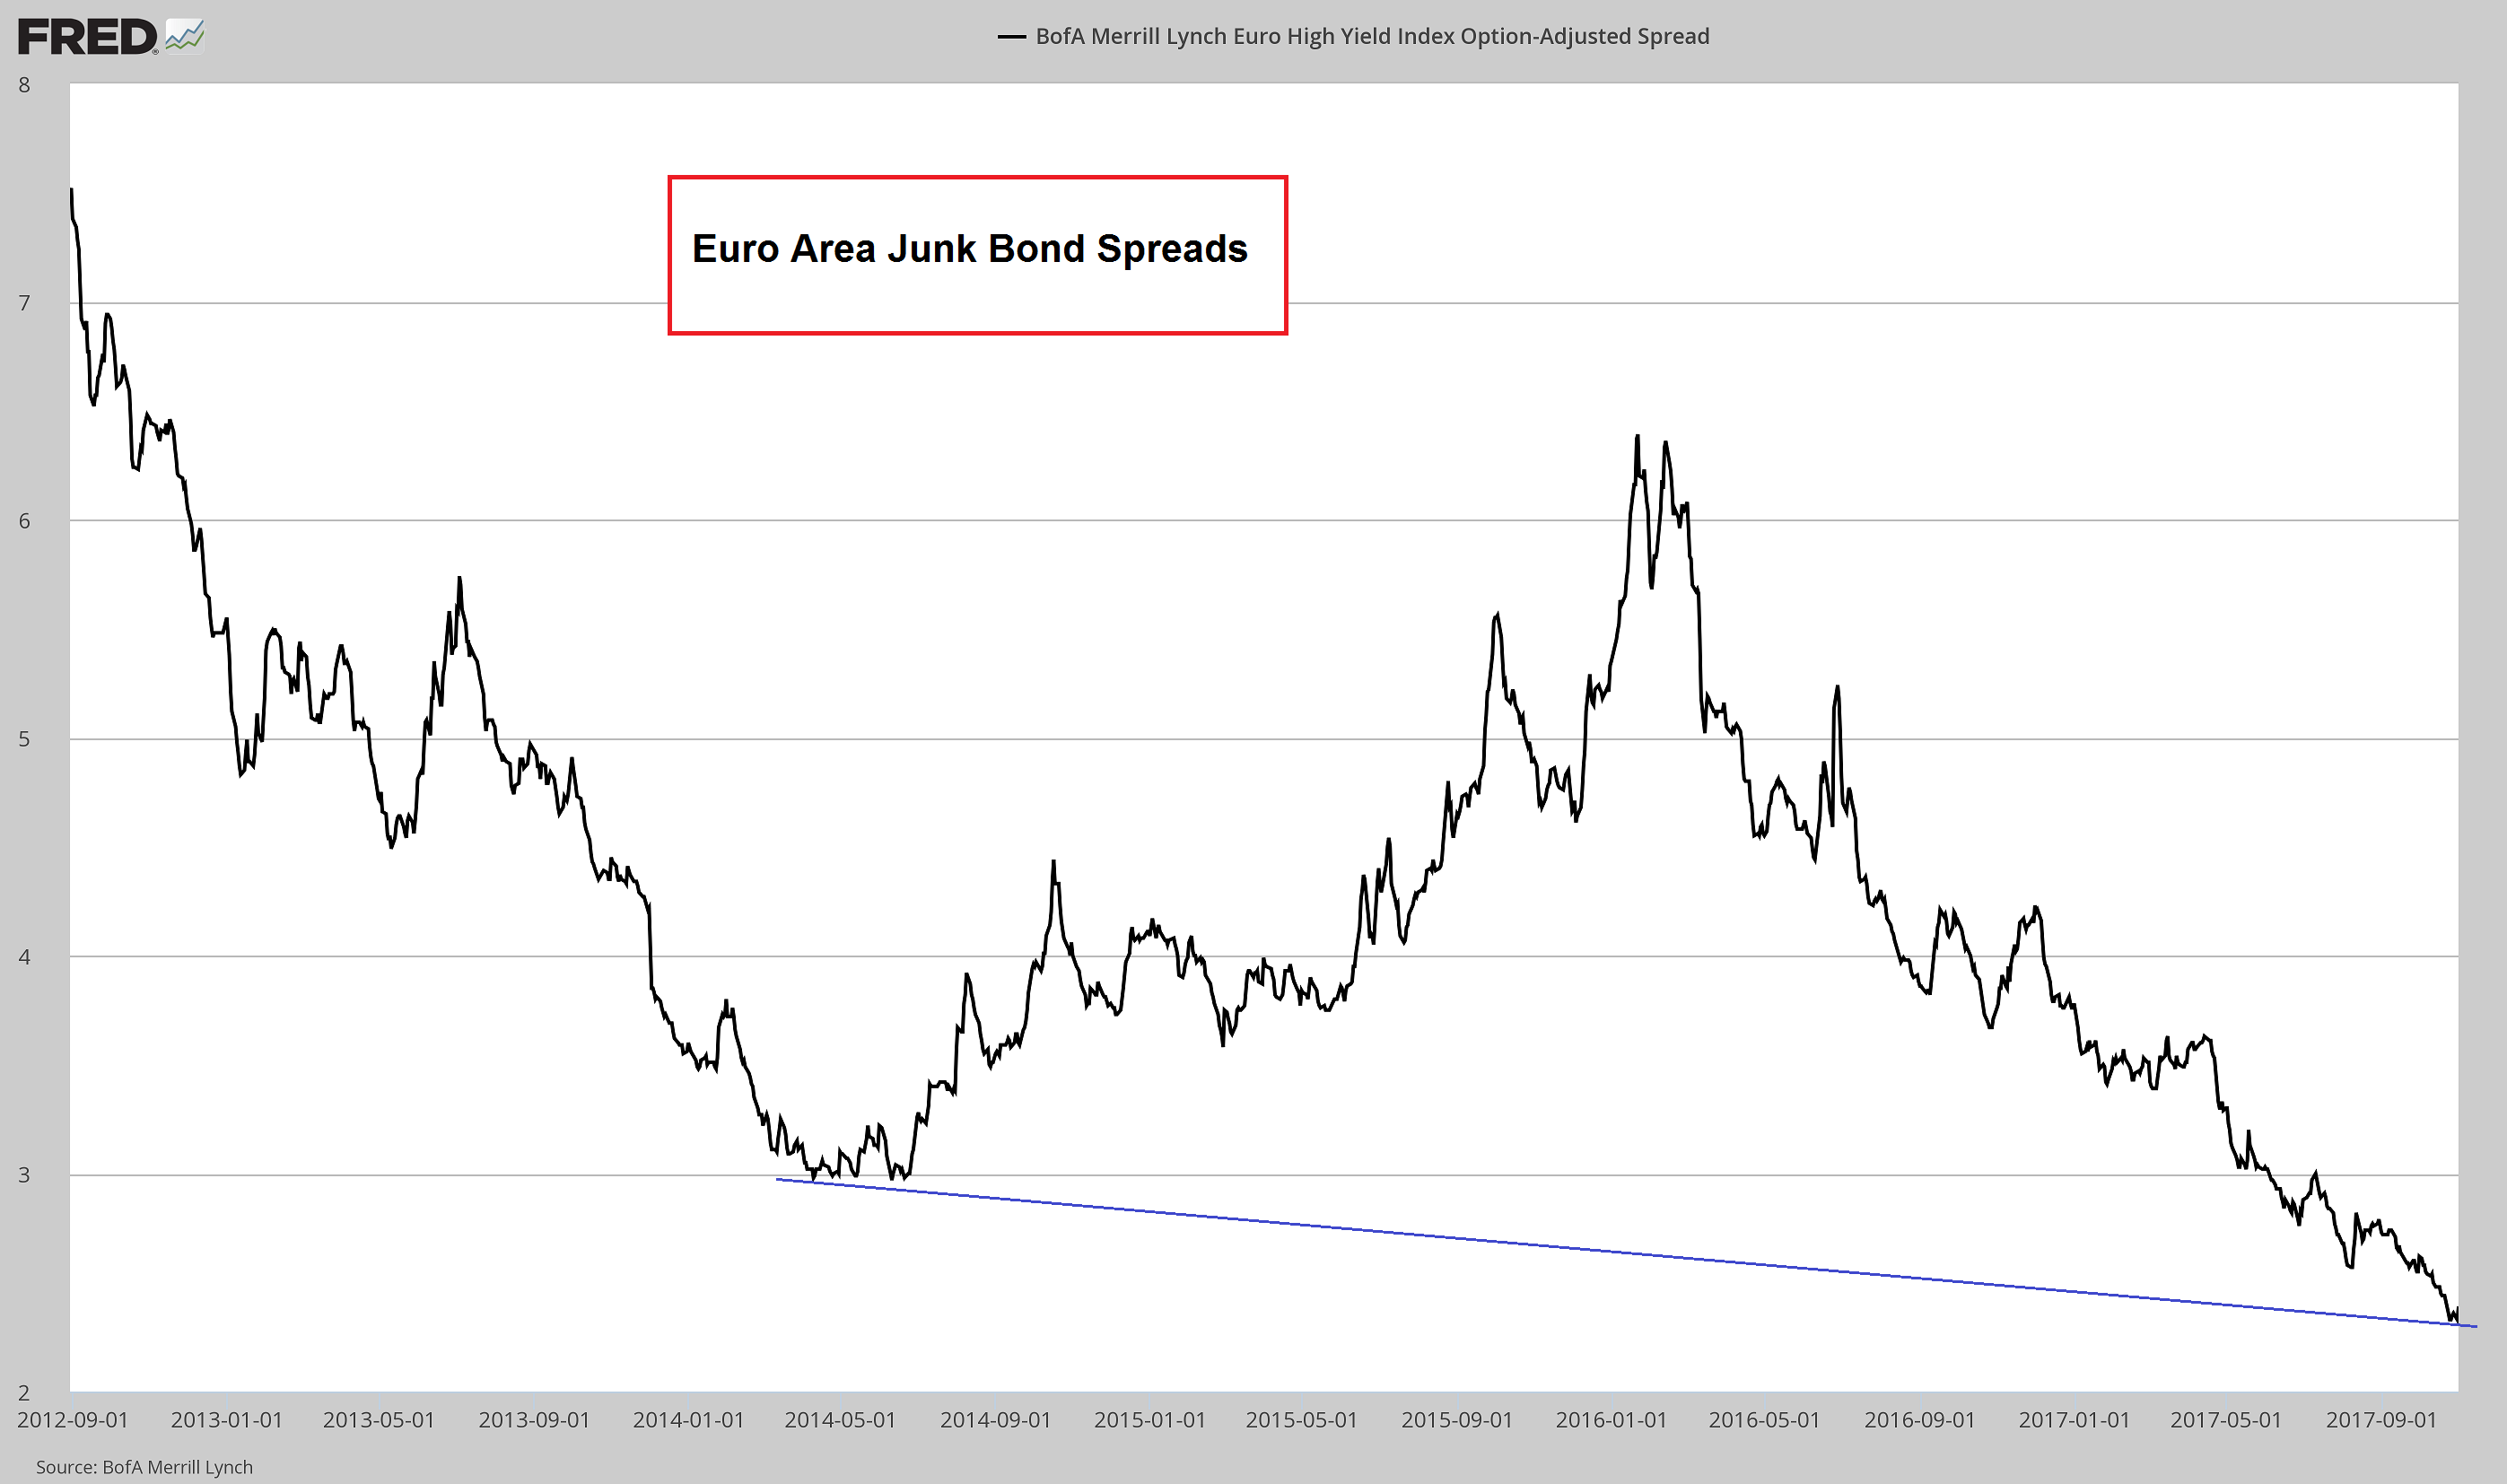 Euro Area Junk Bond Spreads, Sep 2012 - 2017